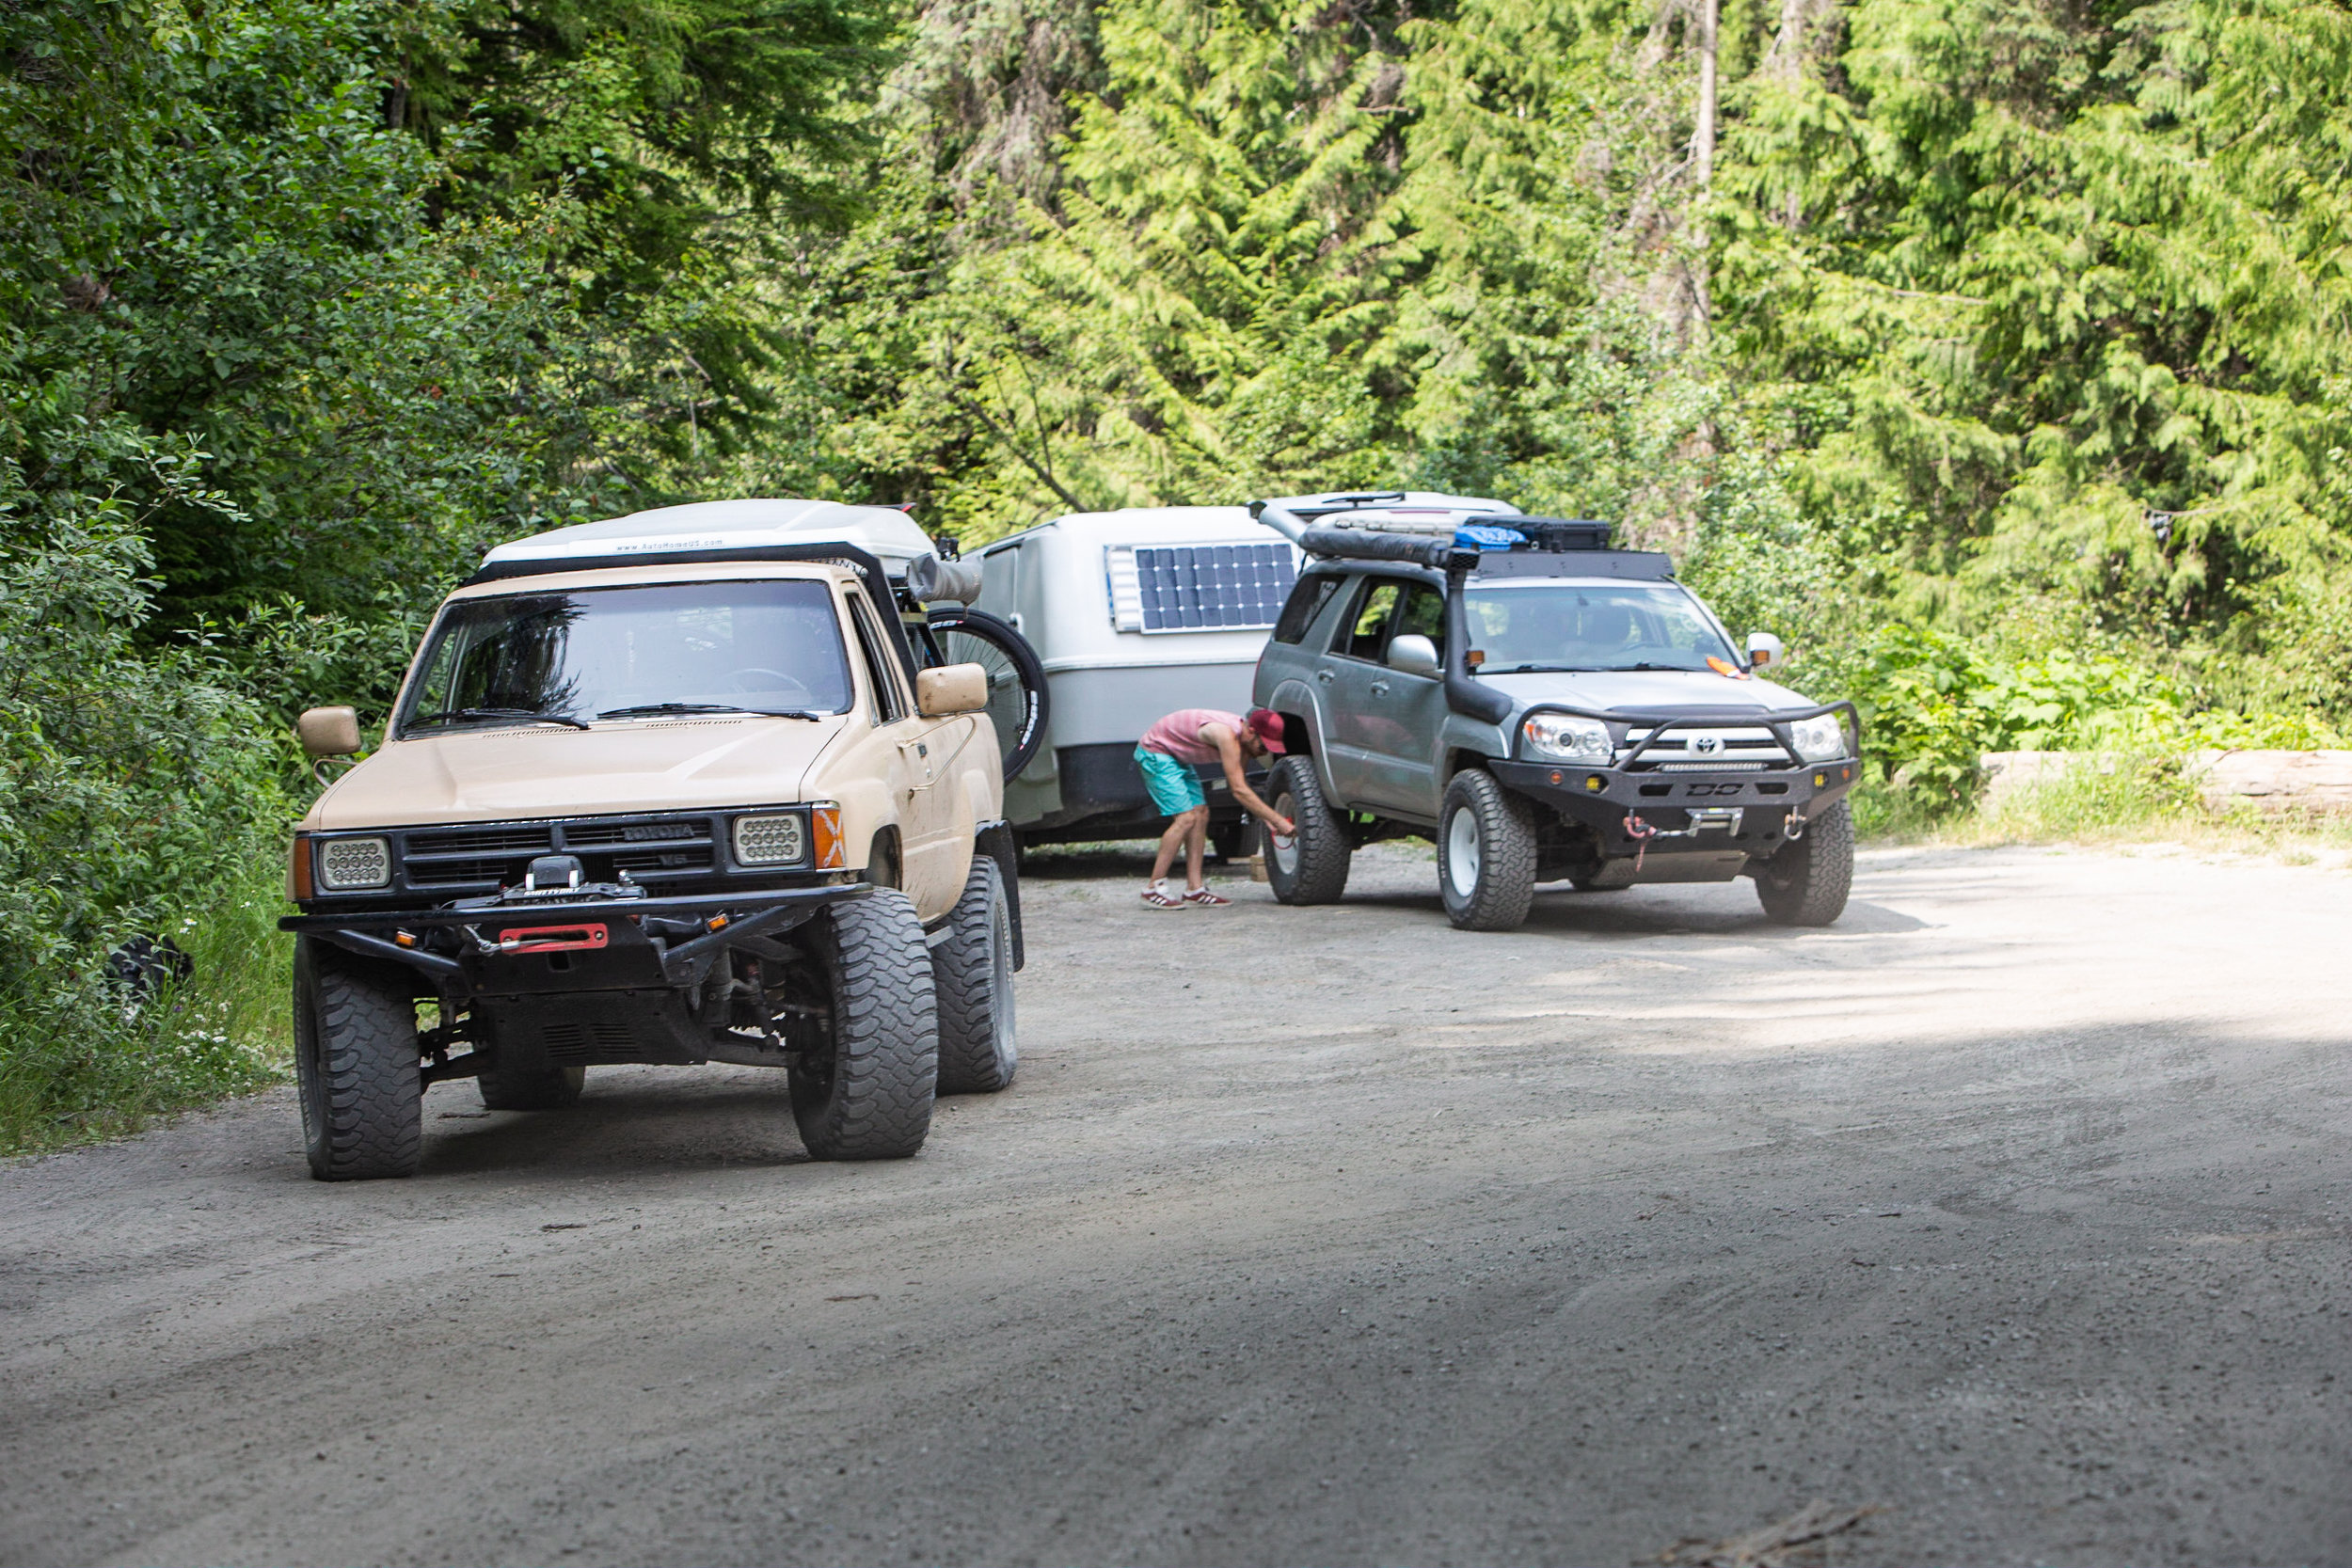 Later the next day we decided to drive up a mountain just outside of Kaslo to peek some peaks and gold mines.